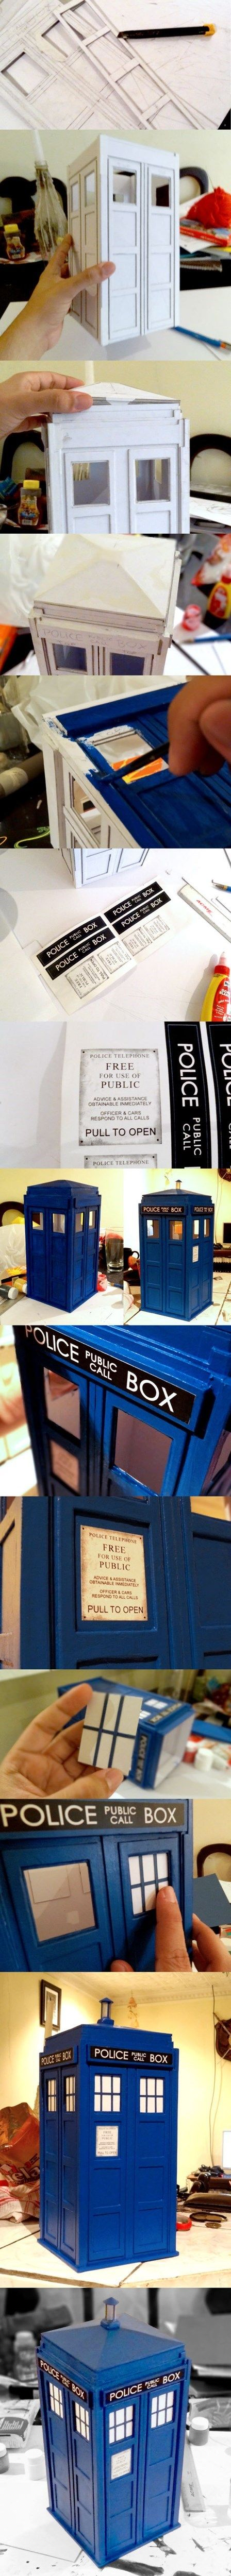 Paper Craft Your Own Public Call Box!